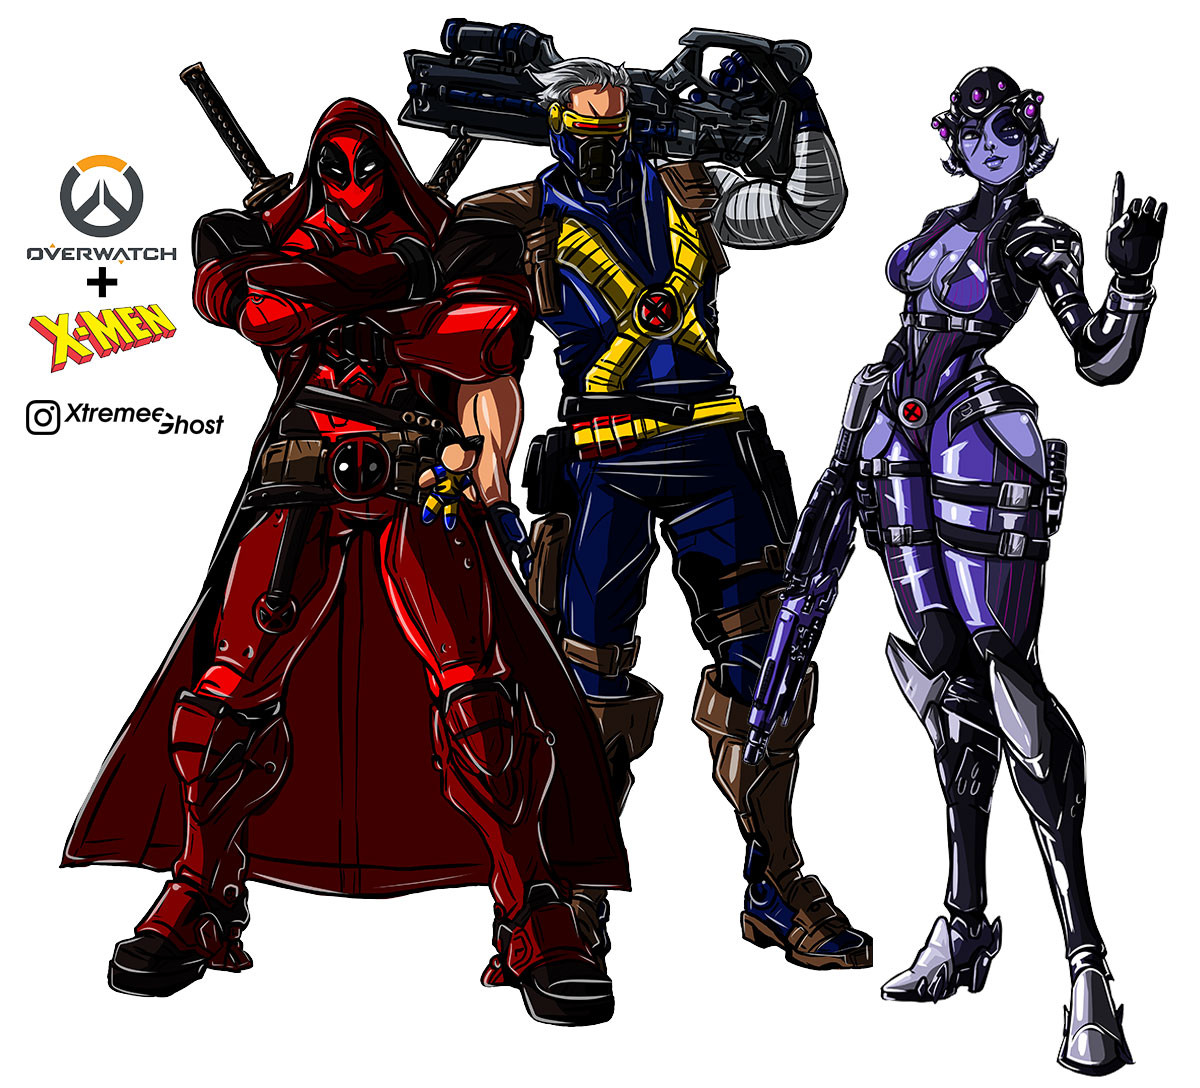 Overwatch com visuais dos X-Men - Reaper, Soldado 76 e Widow Maker